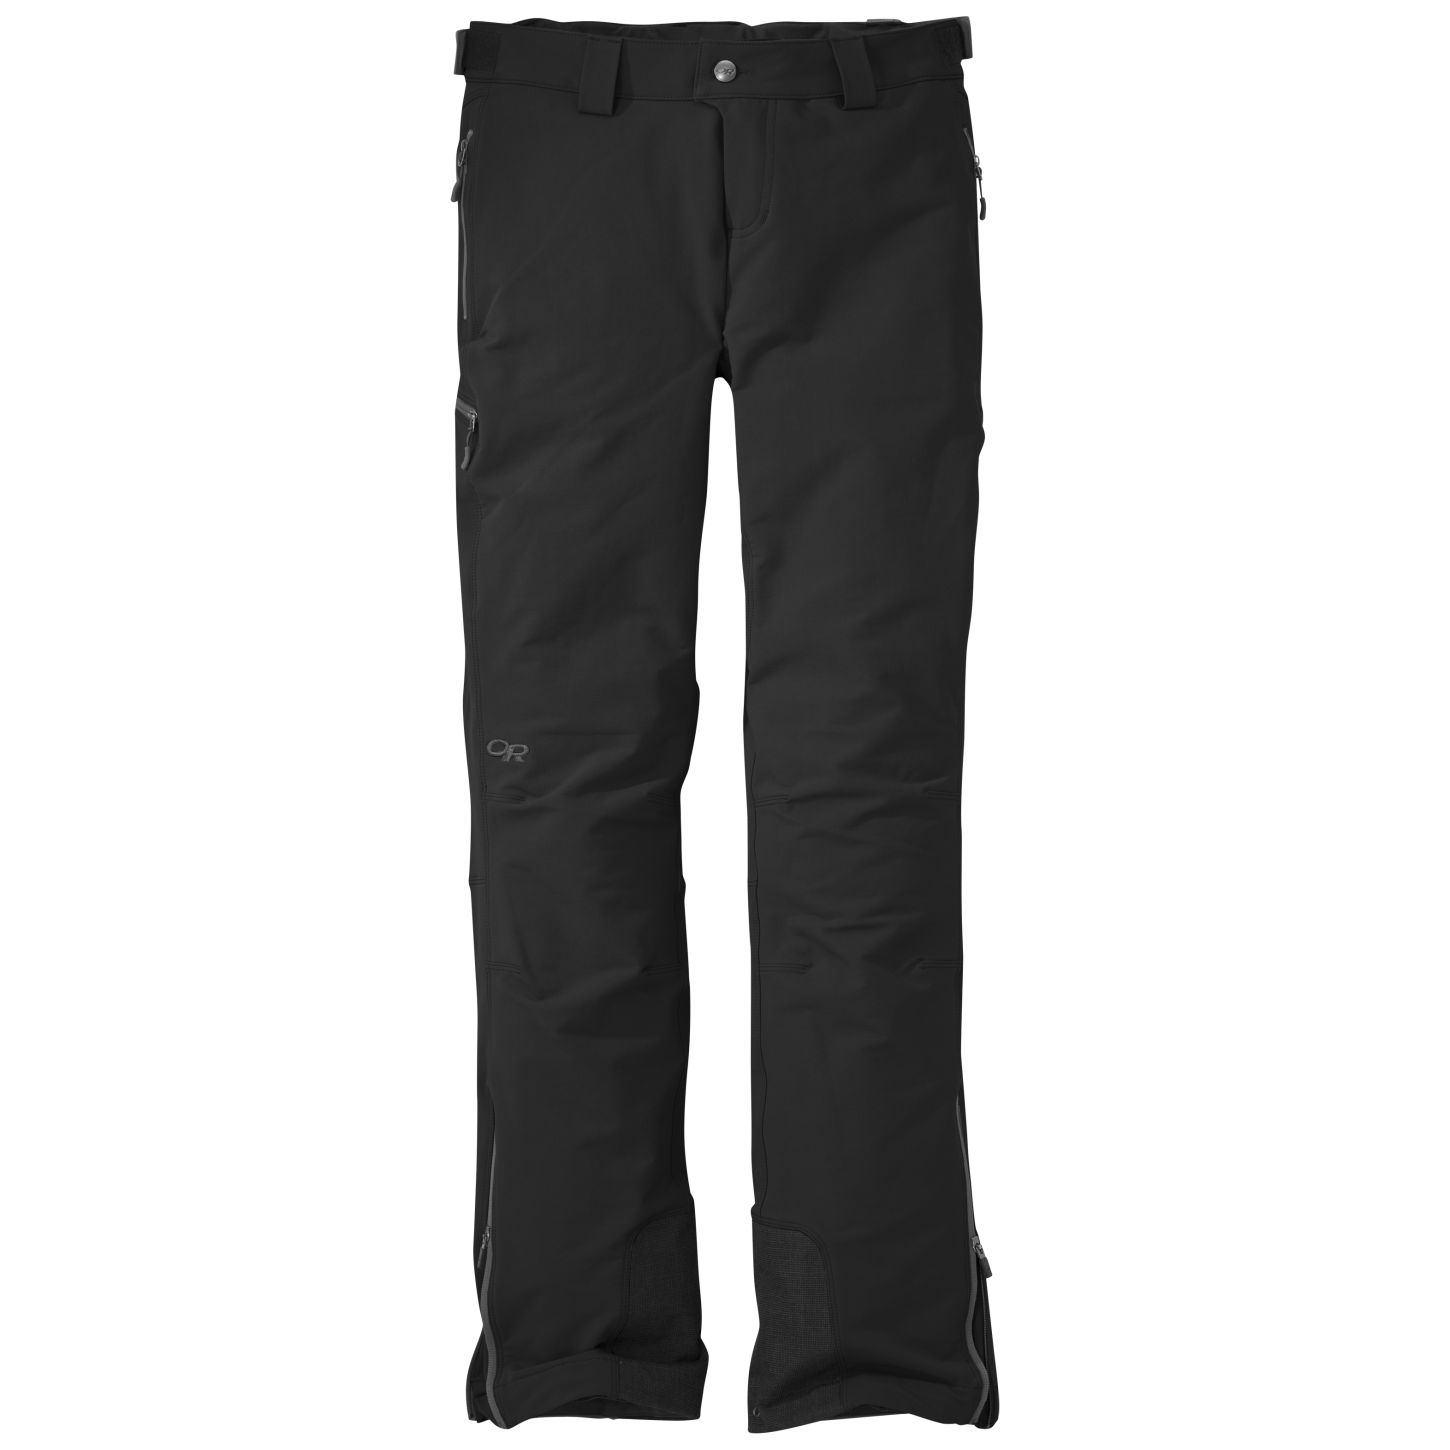 Outdoor Research Women's Cirque Pants black-30